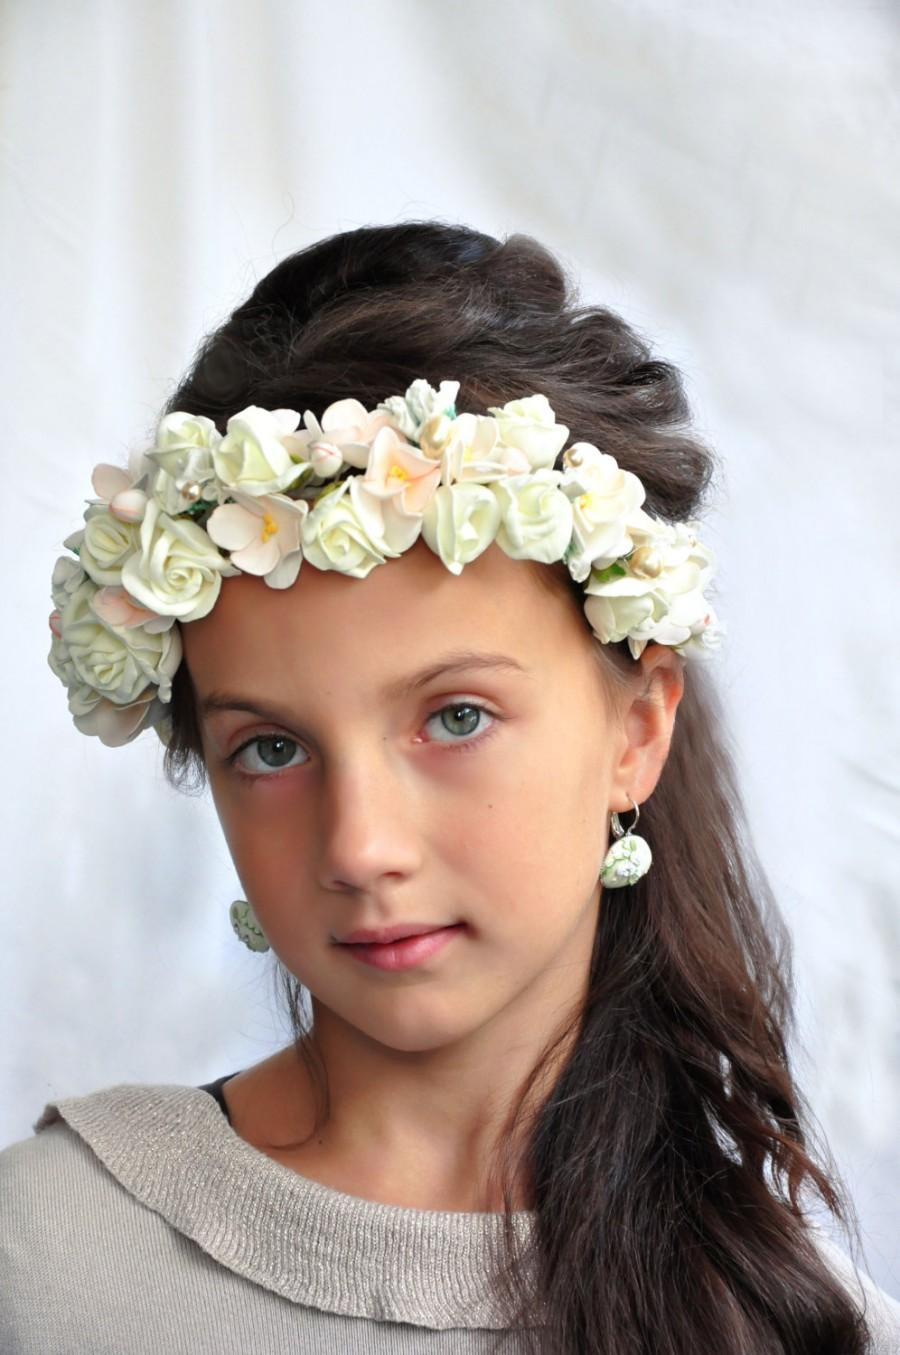 Cream flower bridal crown hair wreath wedding hair accessory floral cream flower bridal crown hair wreath wedding hair accessory floral crown wedding flower crown flower crown wedding crown floral head wreath izmirmasajfo Choice Image